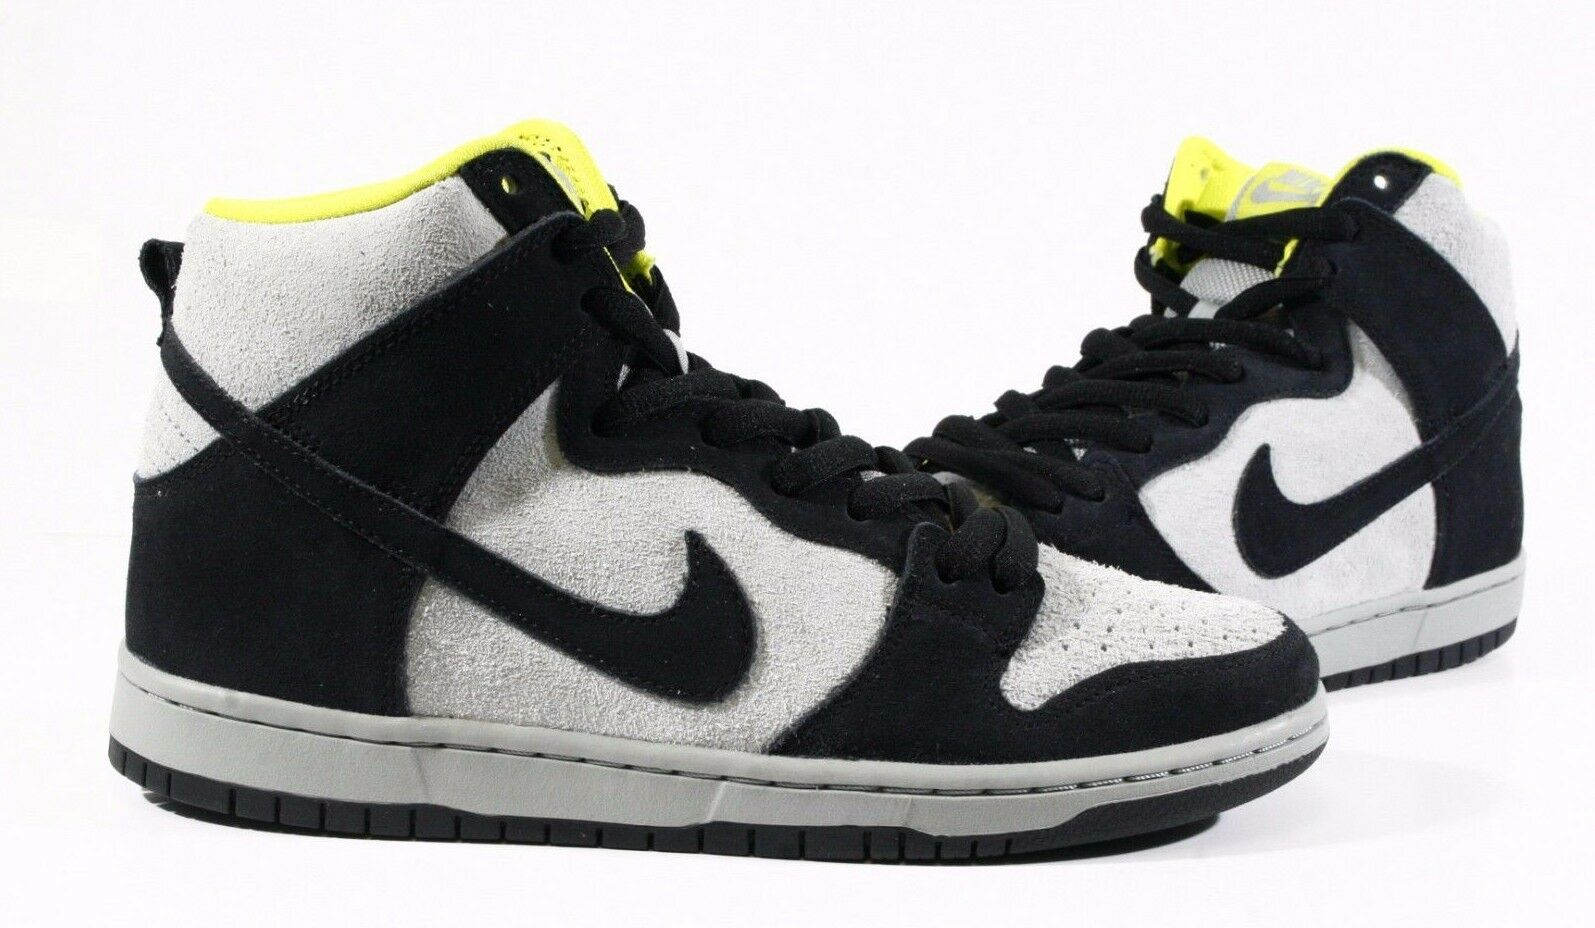 Nike Men's Shoes SB Dunk High Pro Black Base Grey Venom Green DS 305050-017  Casual wild